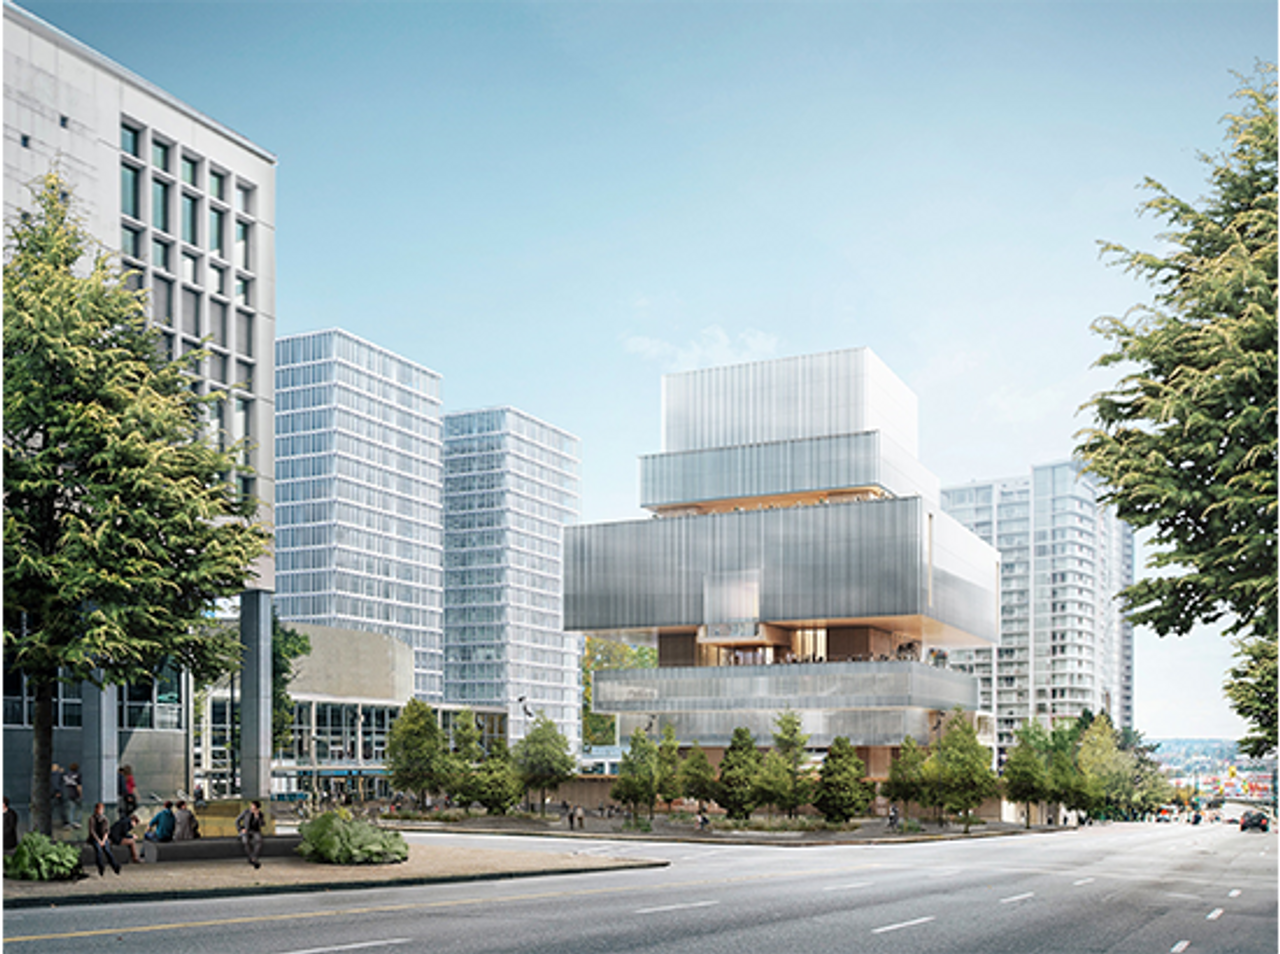 A rendering of the new Vancouver Art Gallery building project, led by Herzog and de Meuron senior partner Christine Binswanger